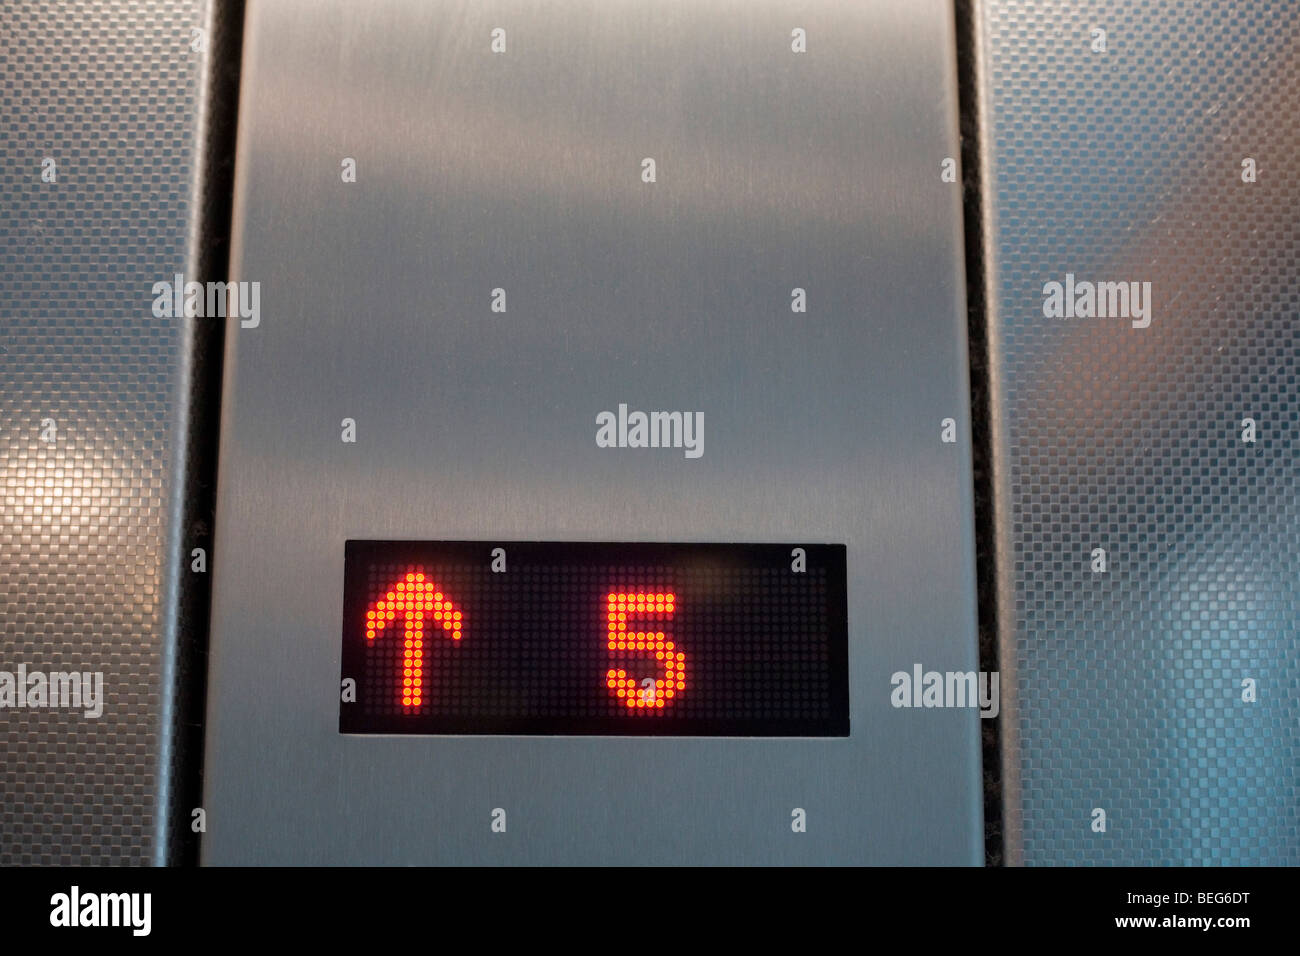 A lift (elevator) shows it is ascending to the top floor number 5 at Heathrow airport's Terminal 5. - Stock Image